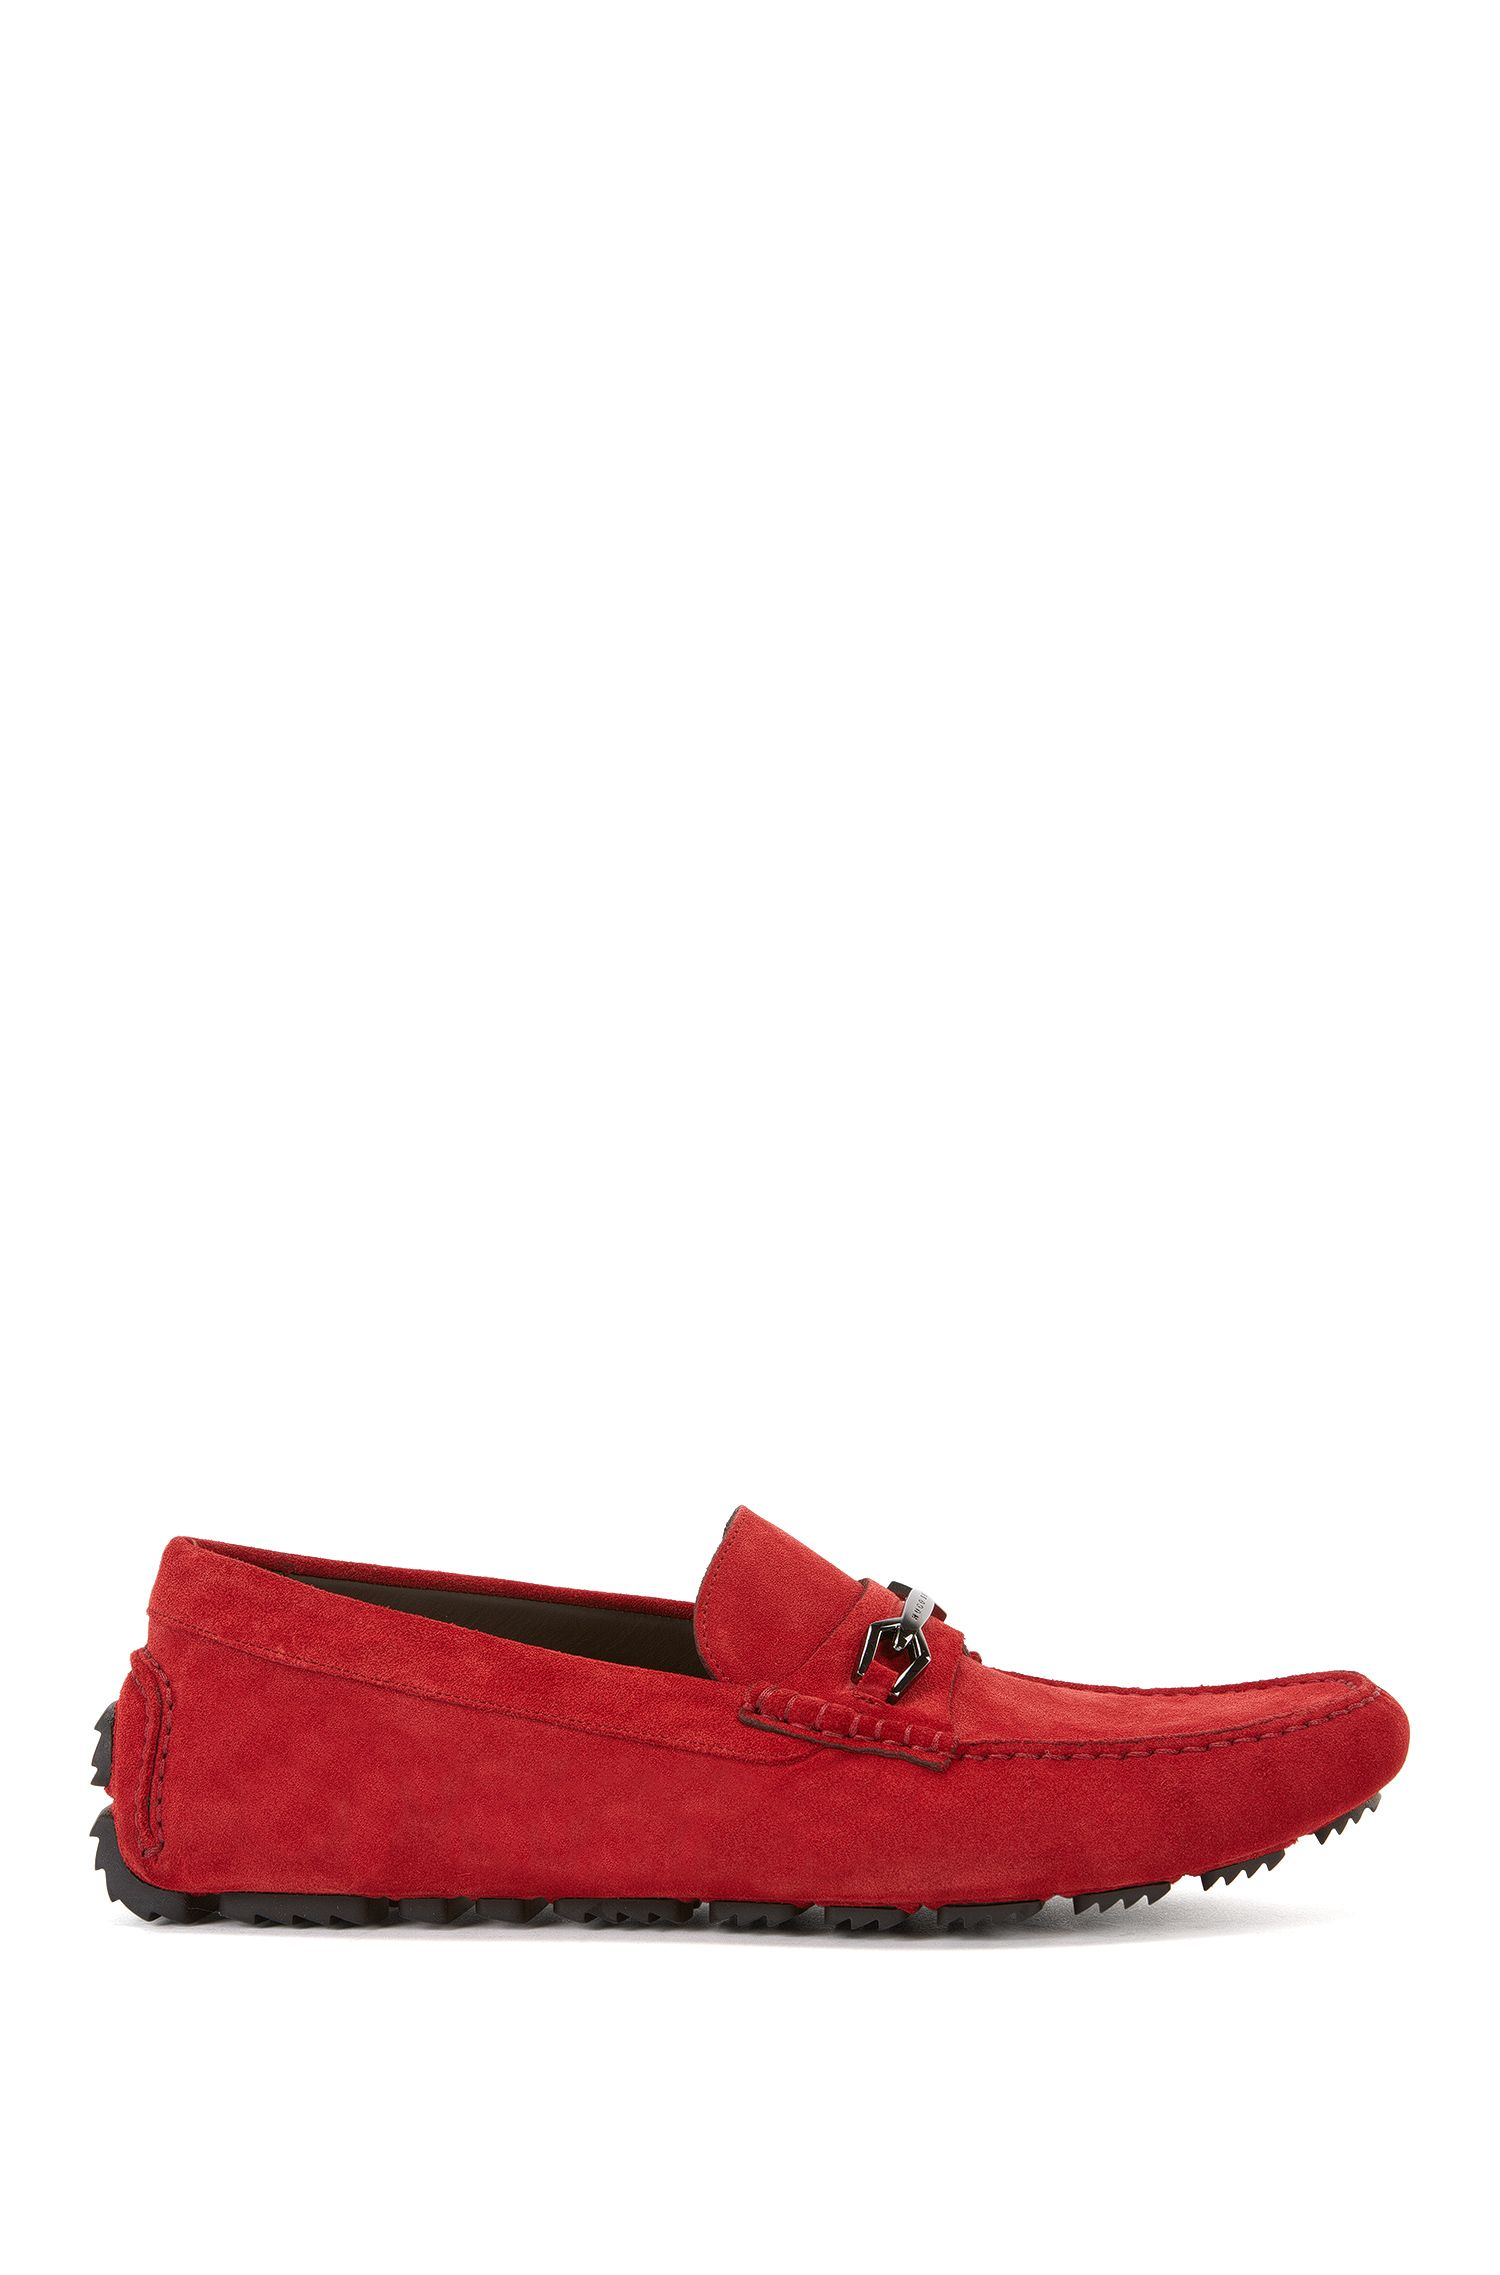 Suede driver shoes with hardware trim